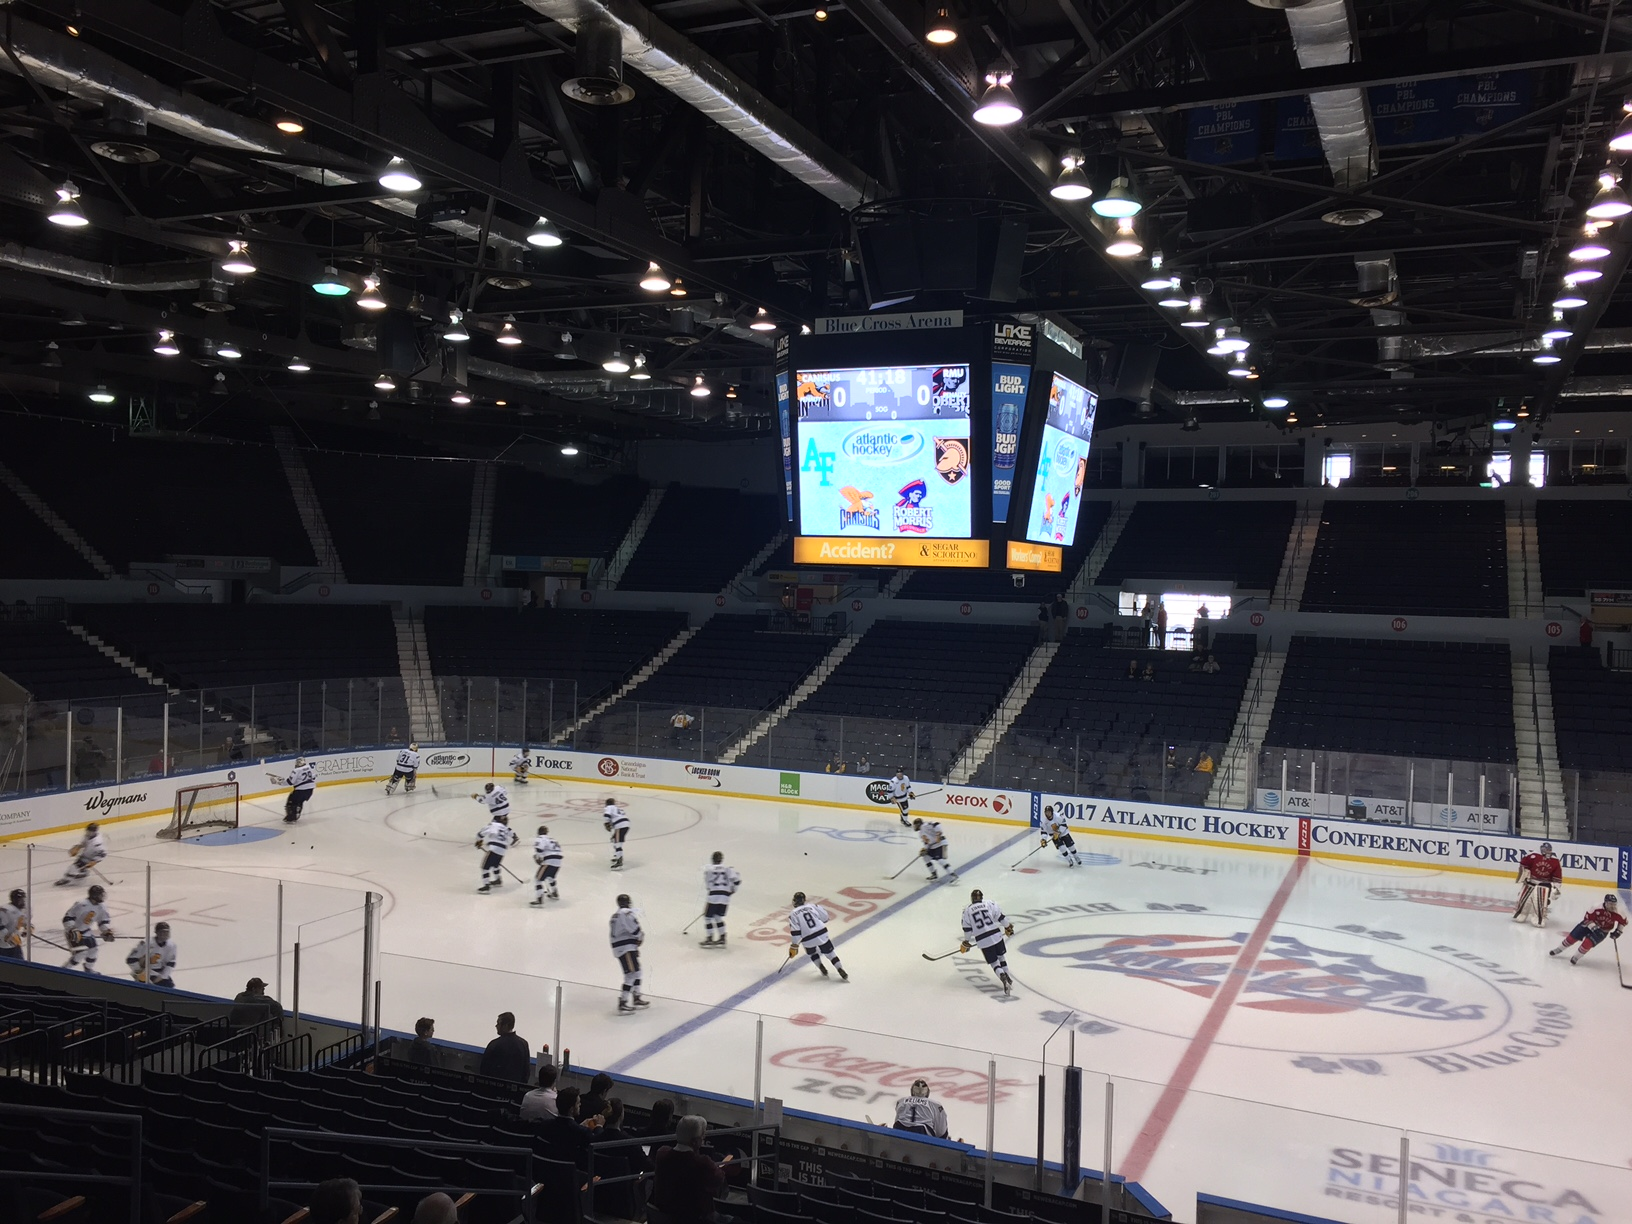 There were 200 fans in the 13,000-seat Blue Cross Arena for the semifinal between Canisius and Robert Morris.